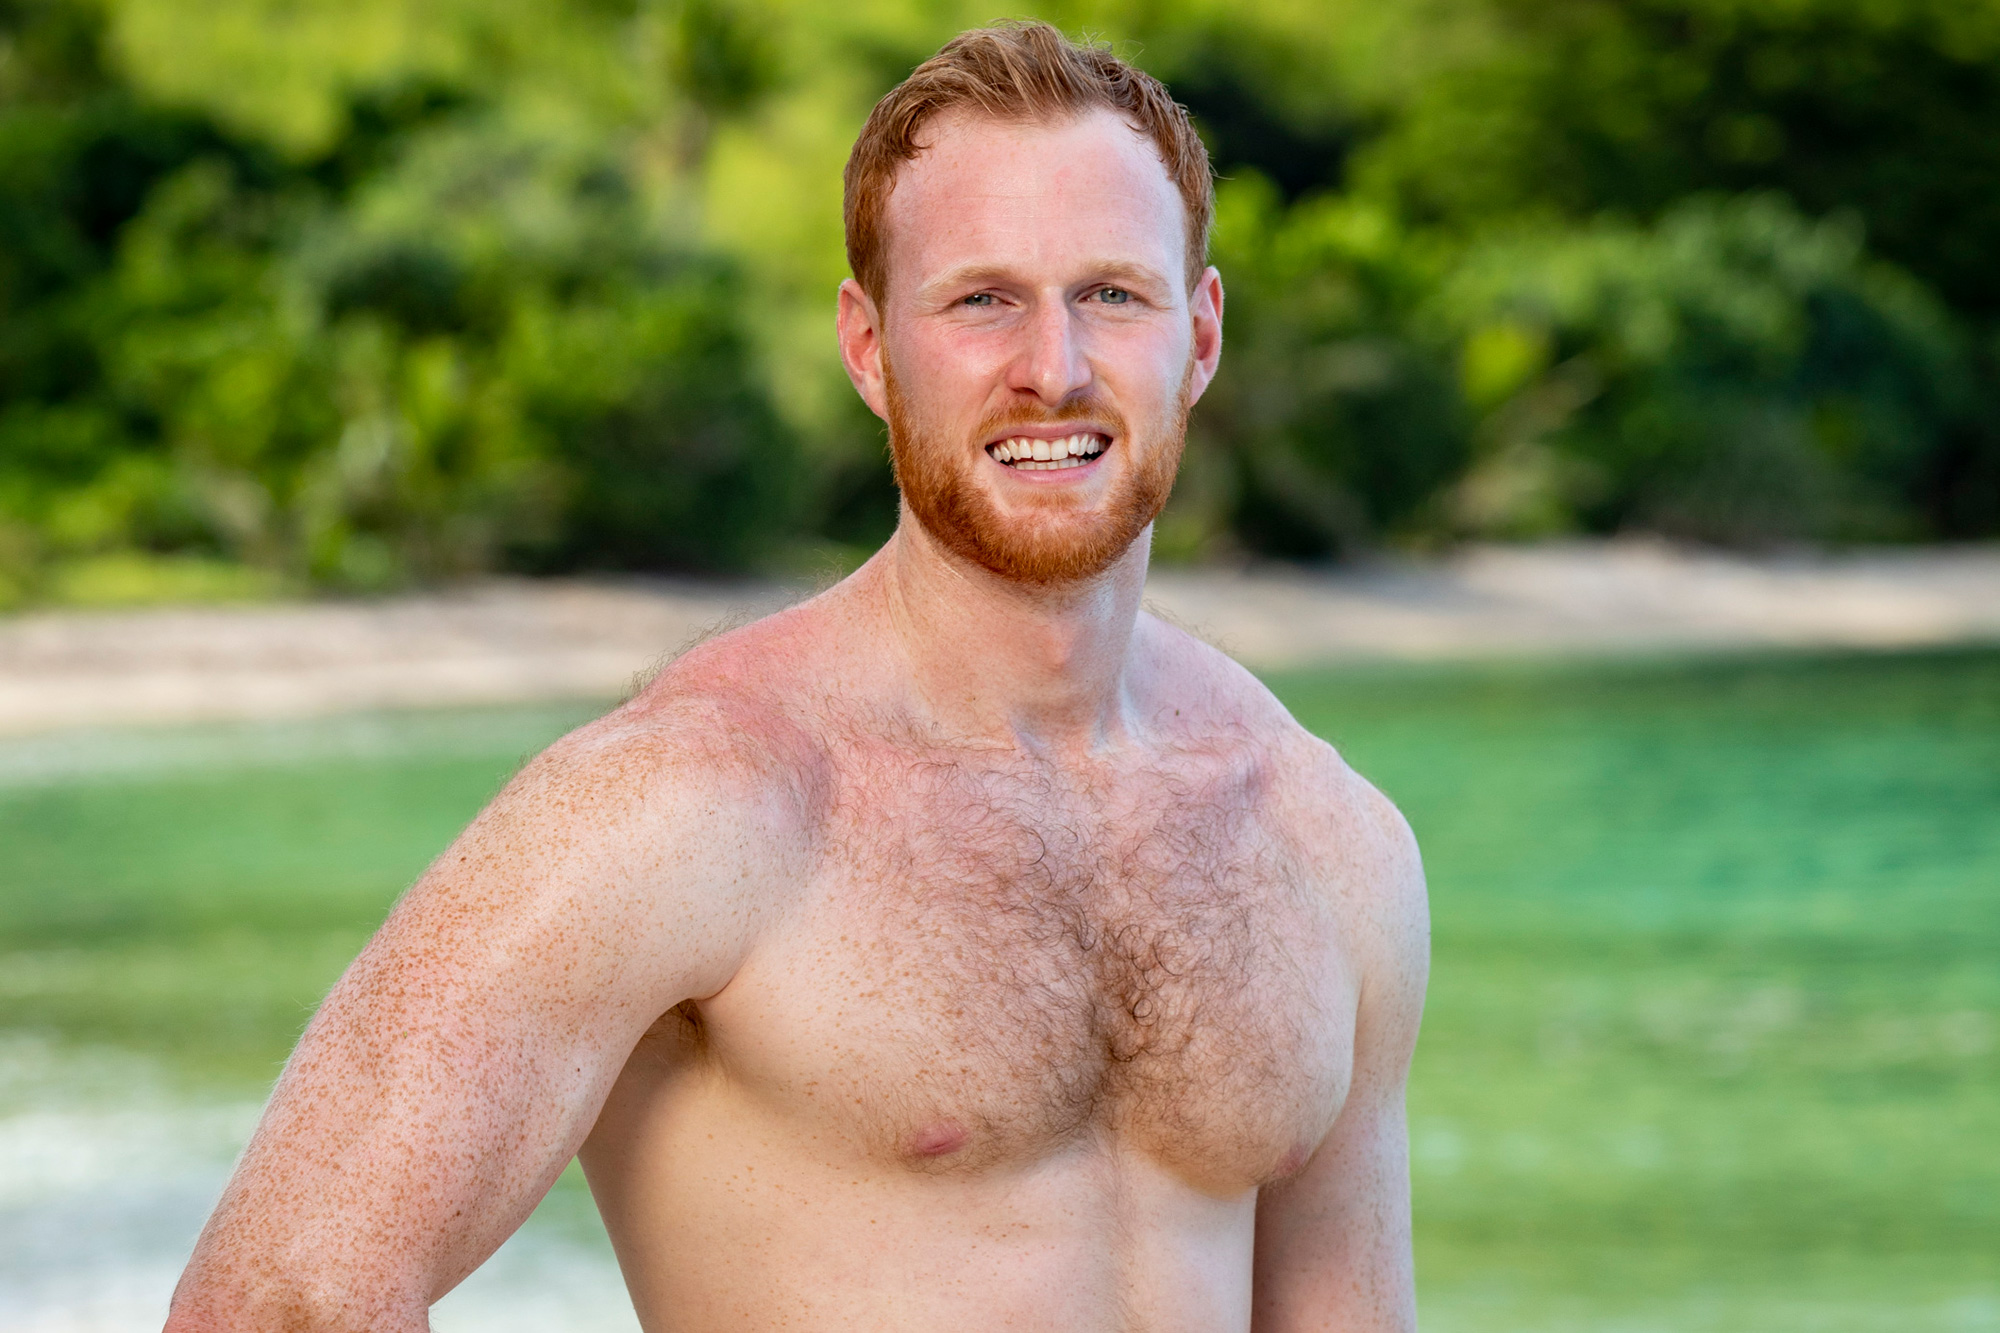 Tommy Sheehan competes on SURVIVOR: Island of the Idols